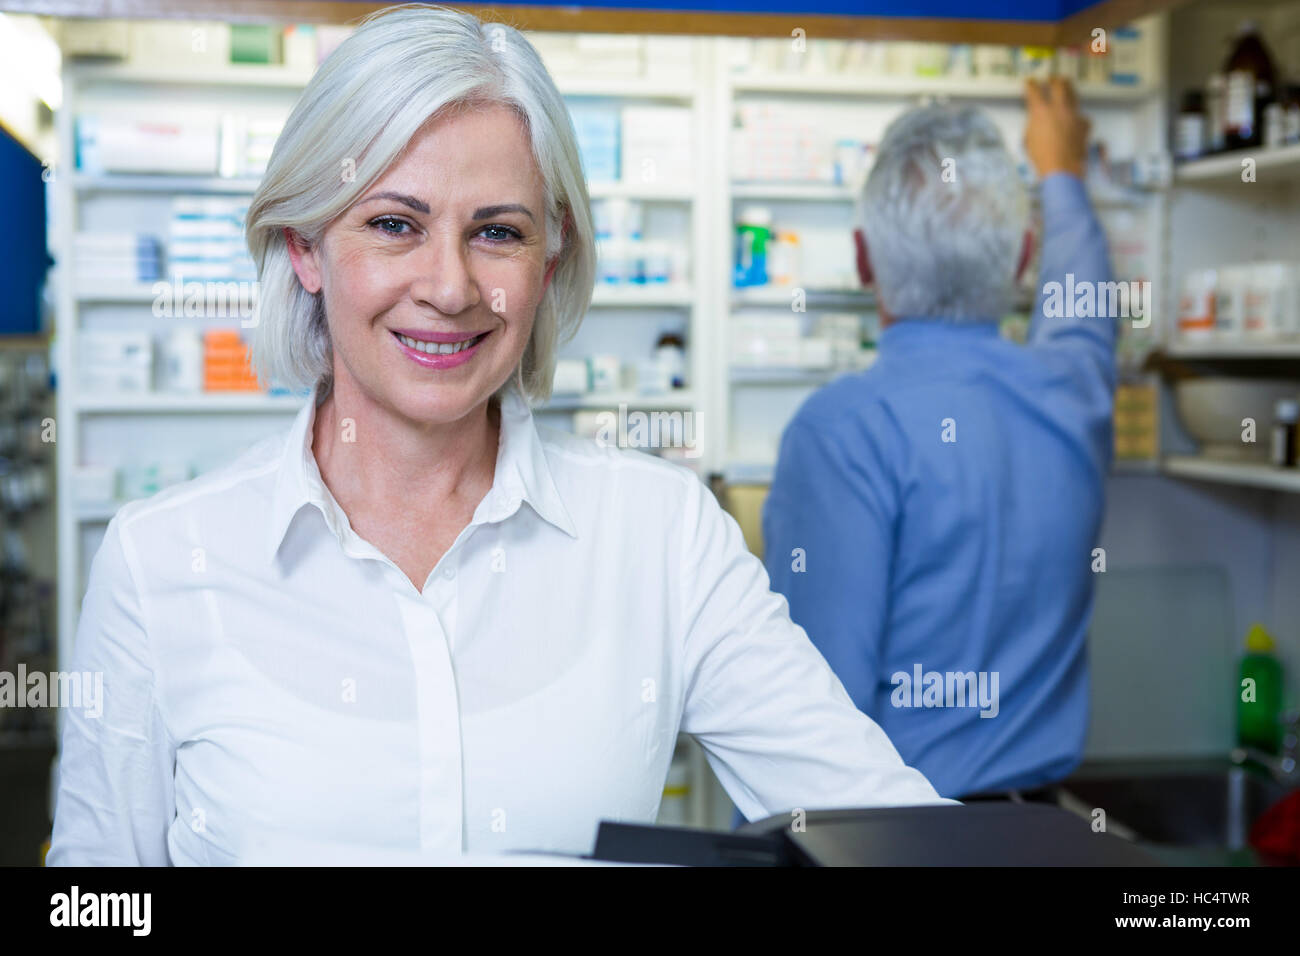 Pharmacist smiling and co-worker checking medicines - Stock Image